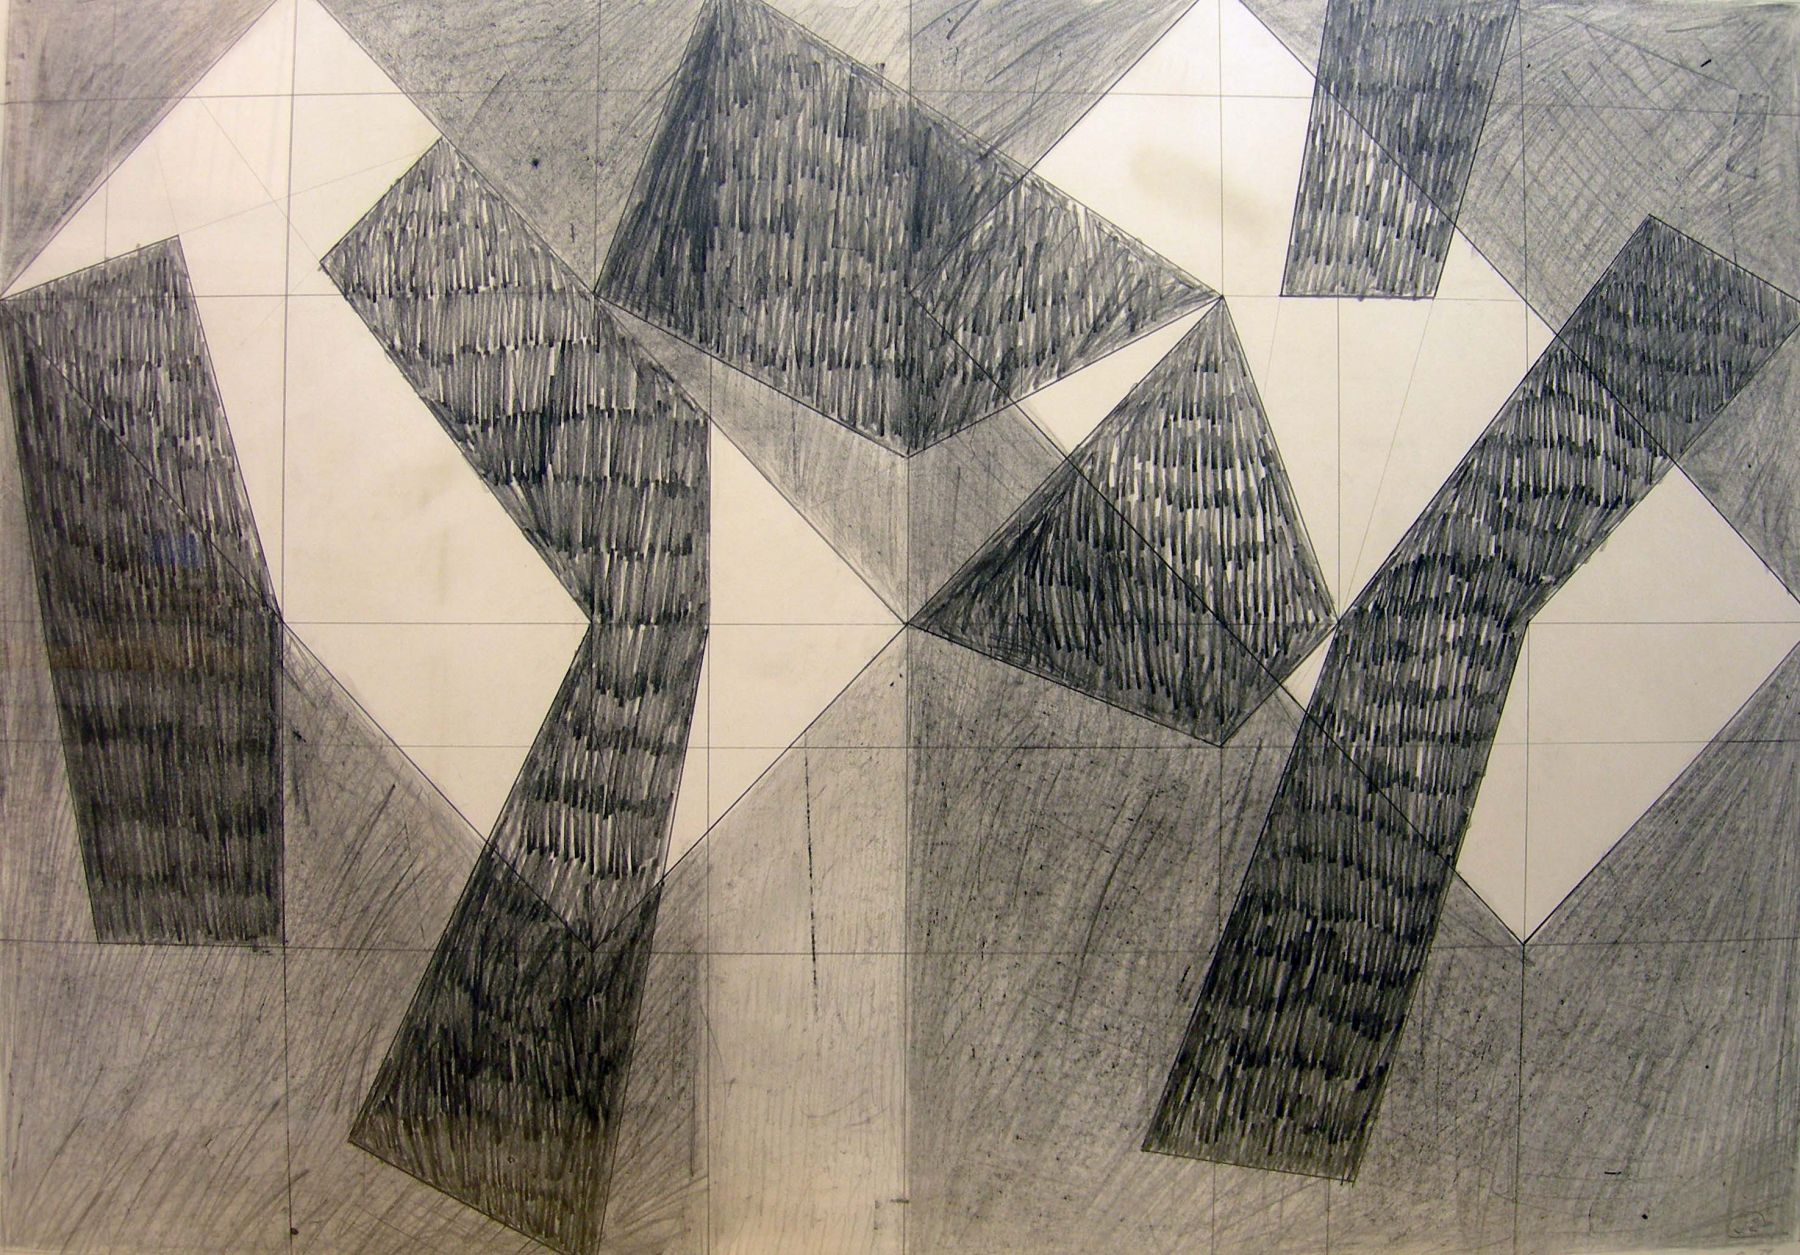 Jack Tworkov, L. B. Pencil Drawing #2, 1979